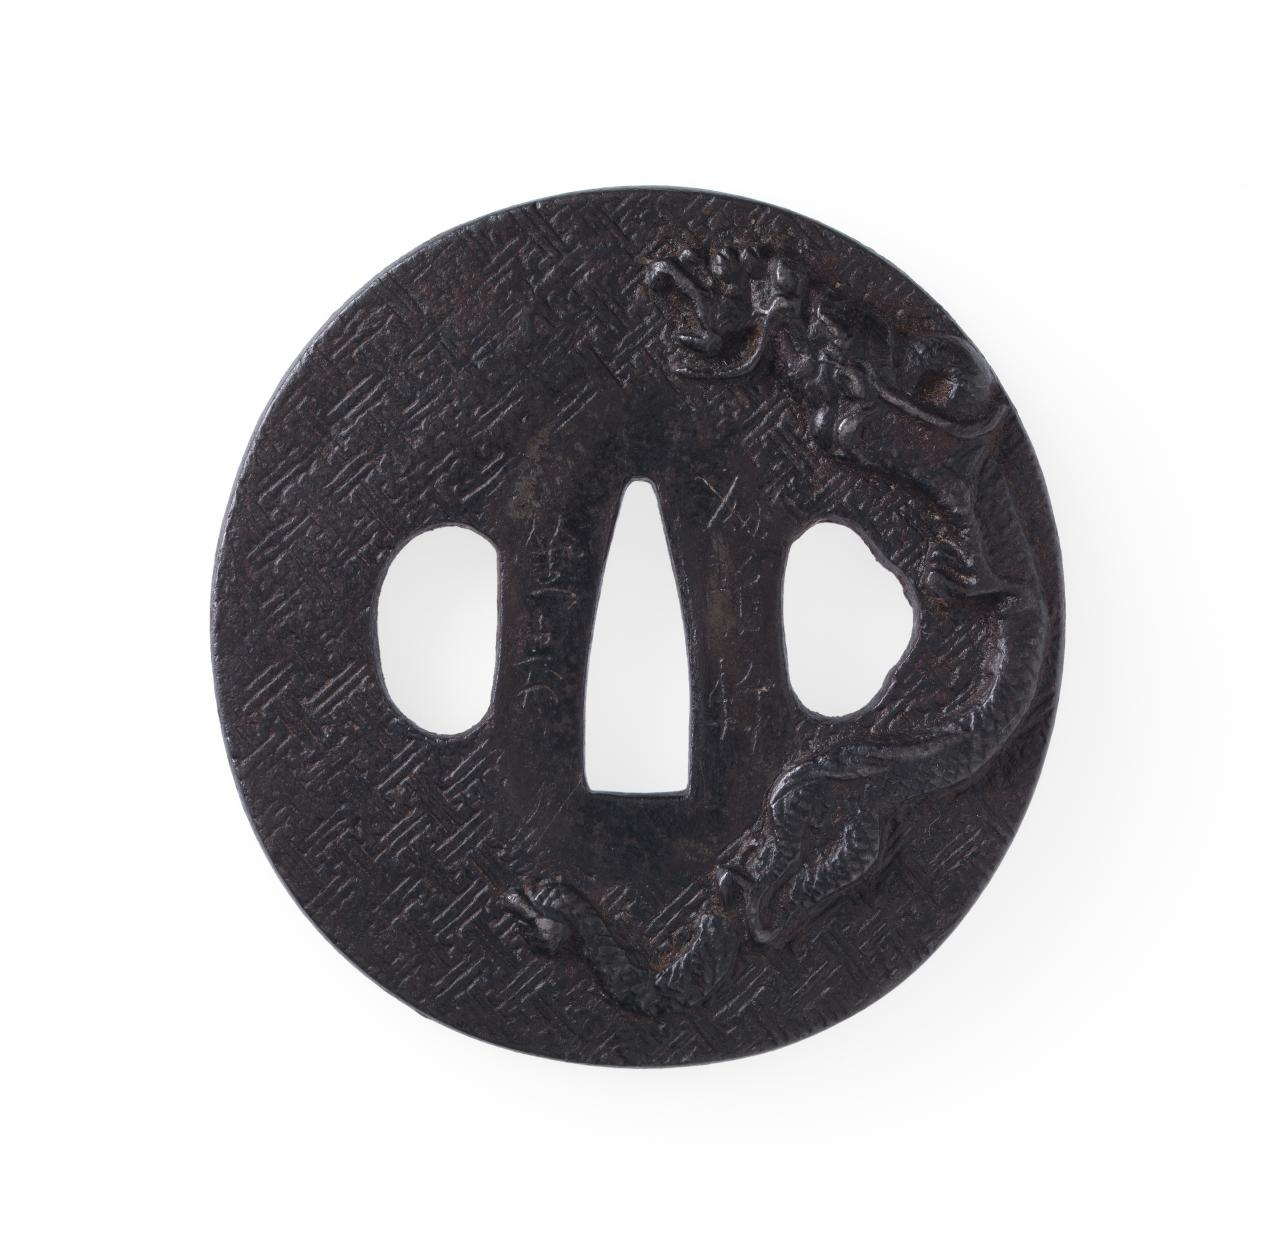 Sword guard with dragon and swasstica motif